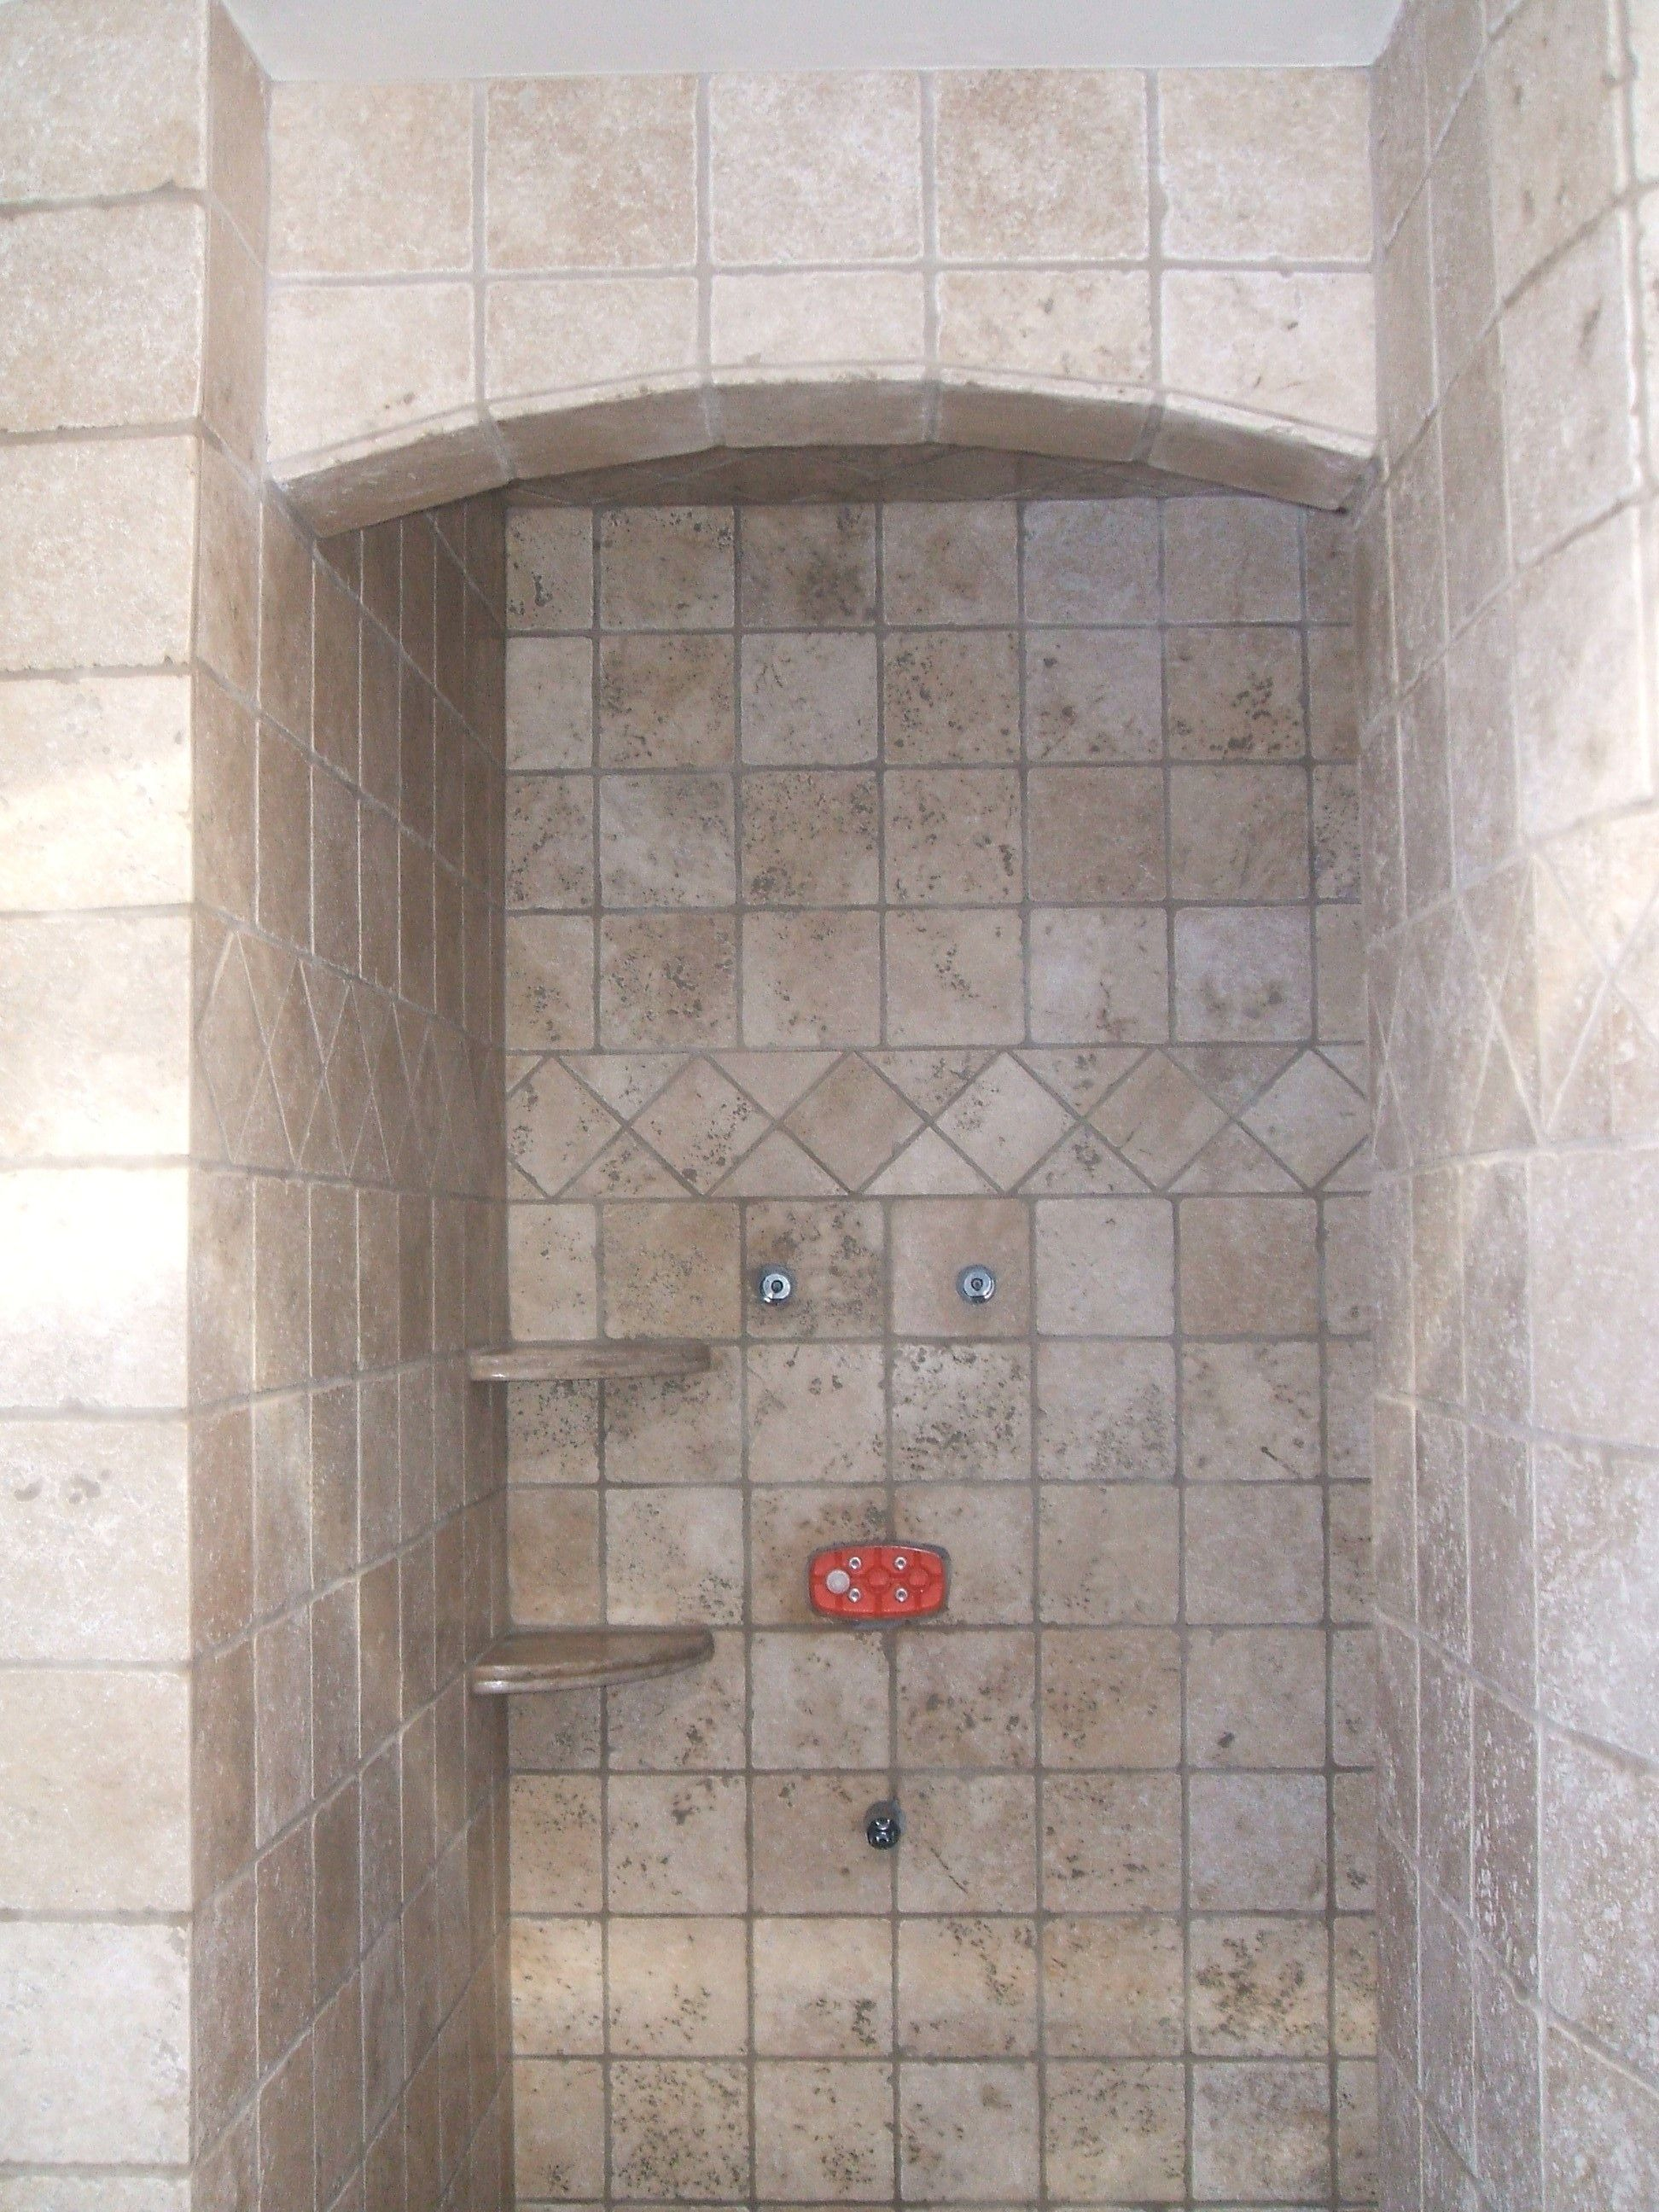 Terrific Ceramic Tile Shower Ideas Small Bathrooms With Awesome Stainless Head Shower And Chrome Faucet Or